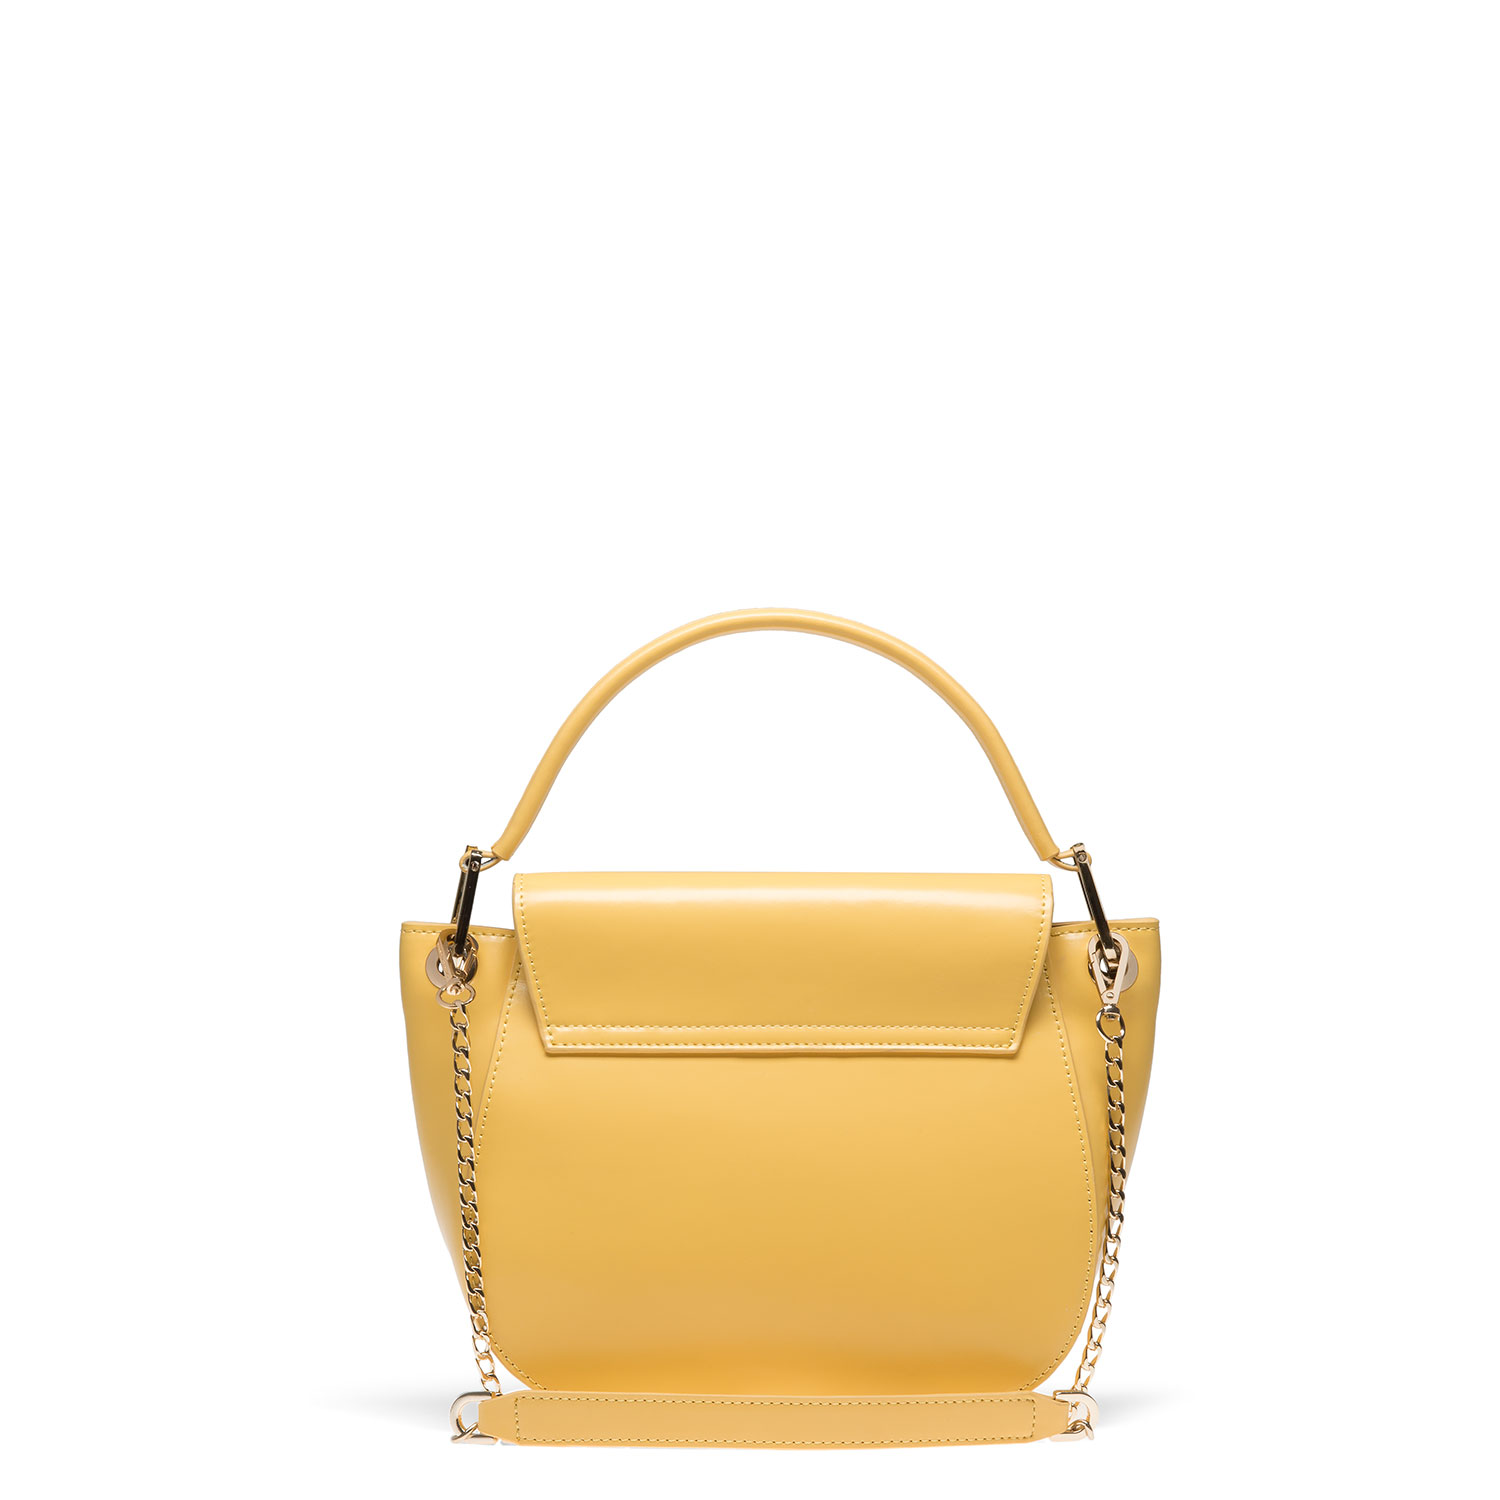 Women's bag CARLO PAZOLINI PS-N2636-13